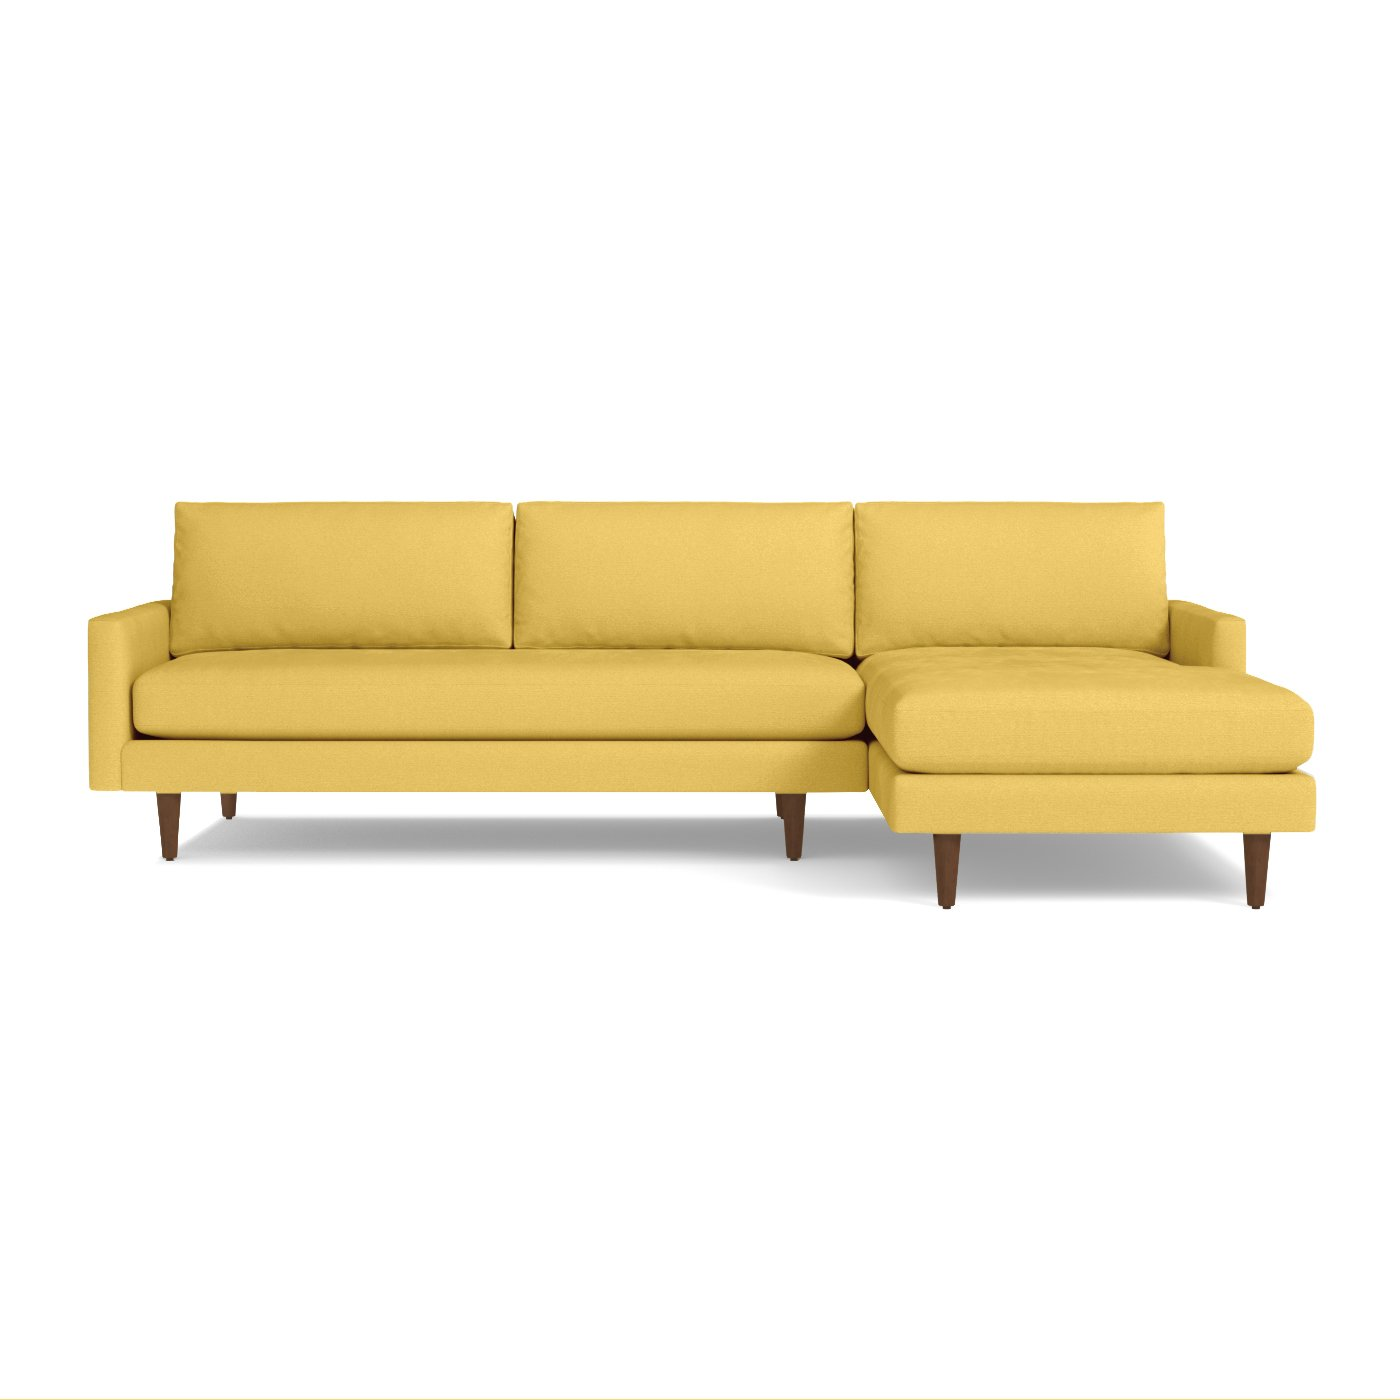 Sofa sectional furniture reclining sectional sofa in for Beeson fabric queen sleeper chaise sofa